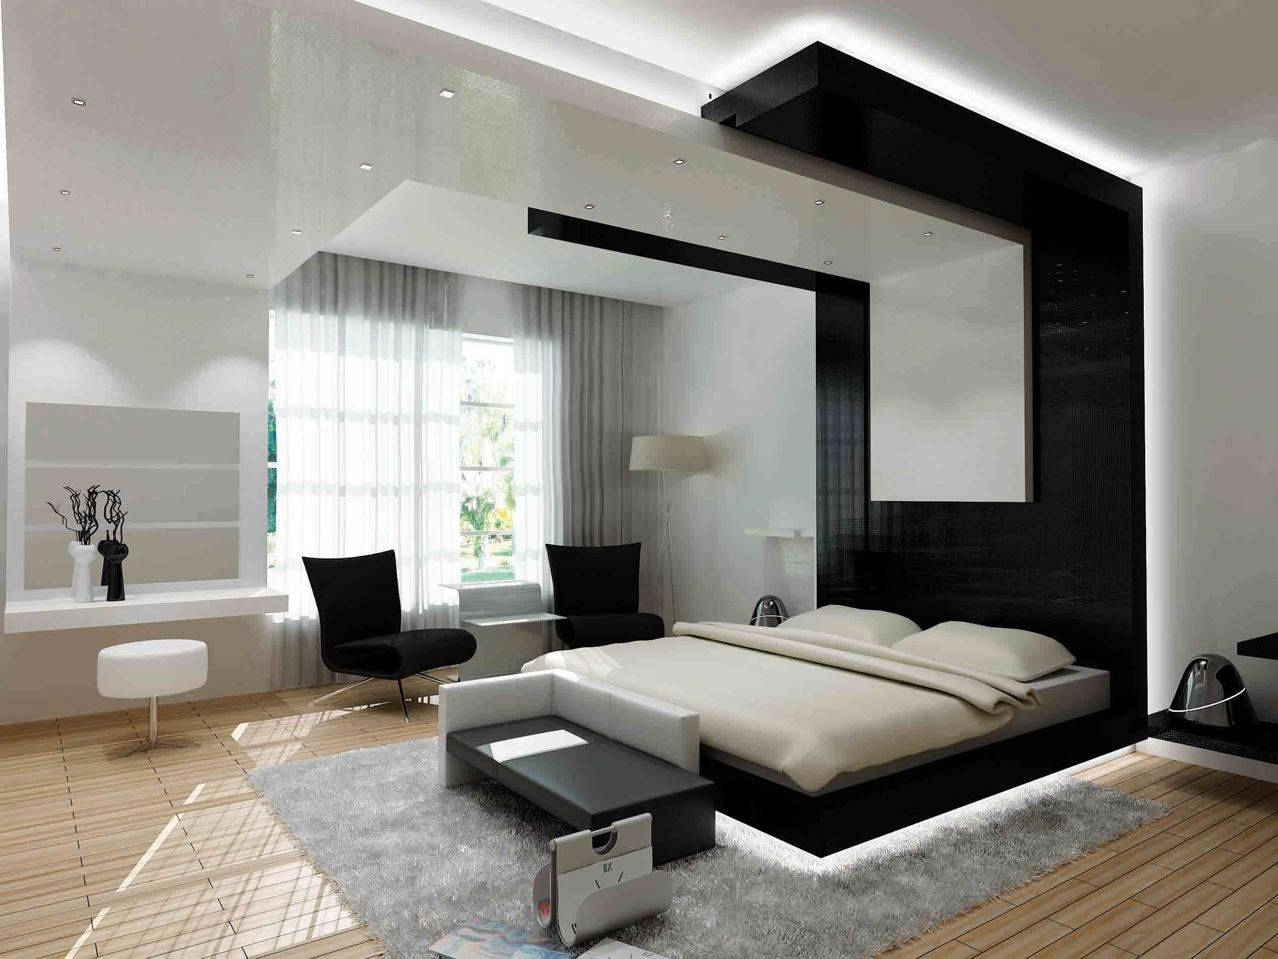 Contemporary Bedroom Design Ideas For Small Room